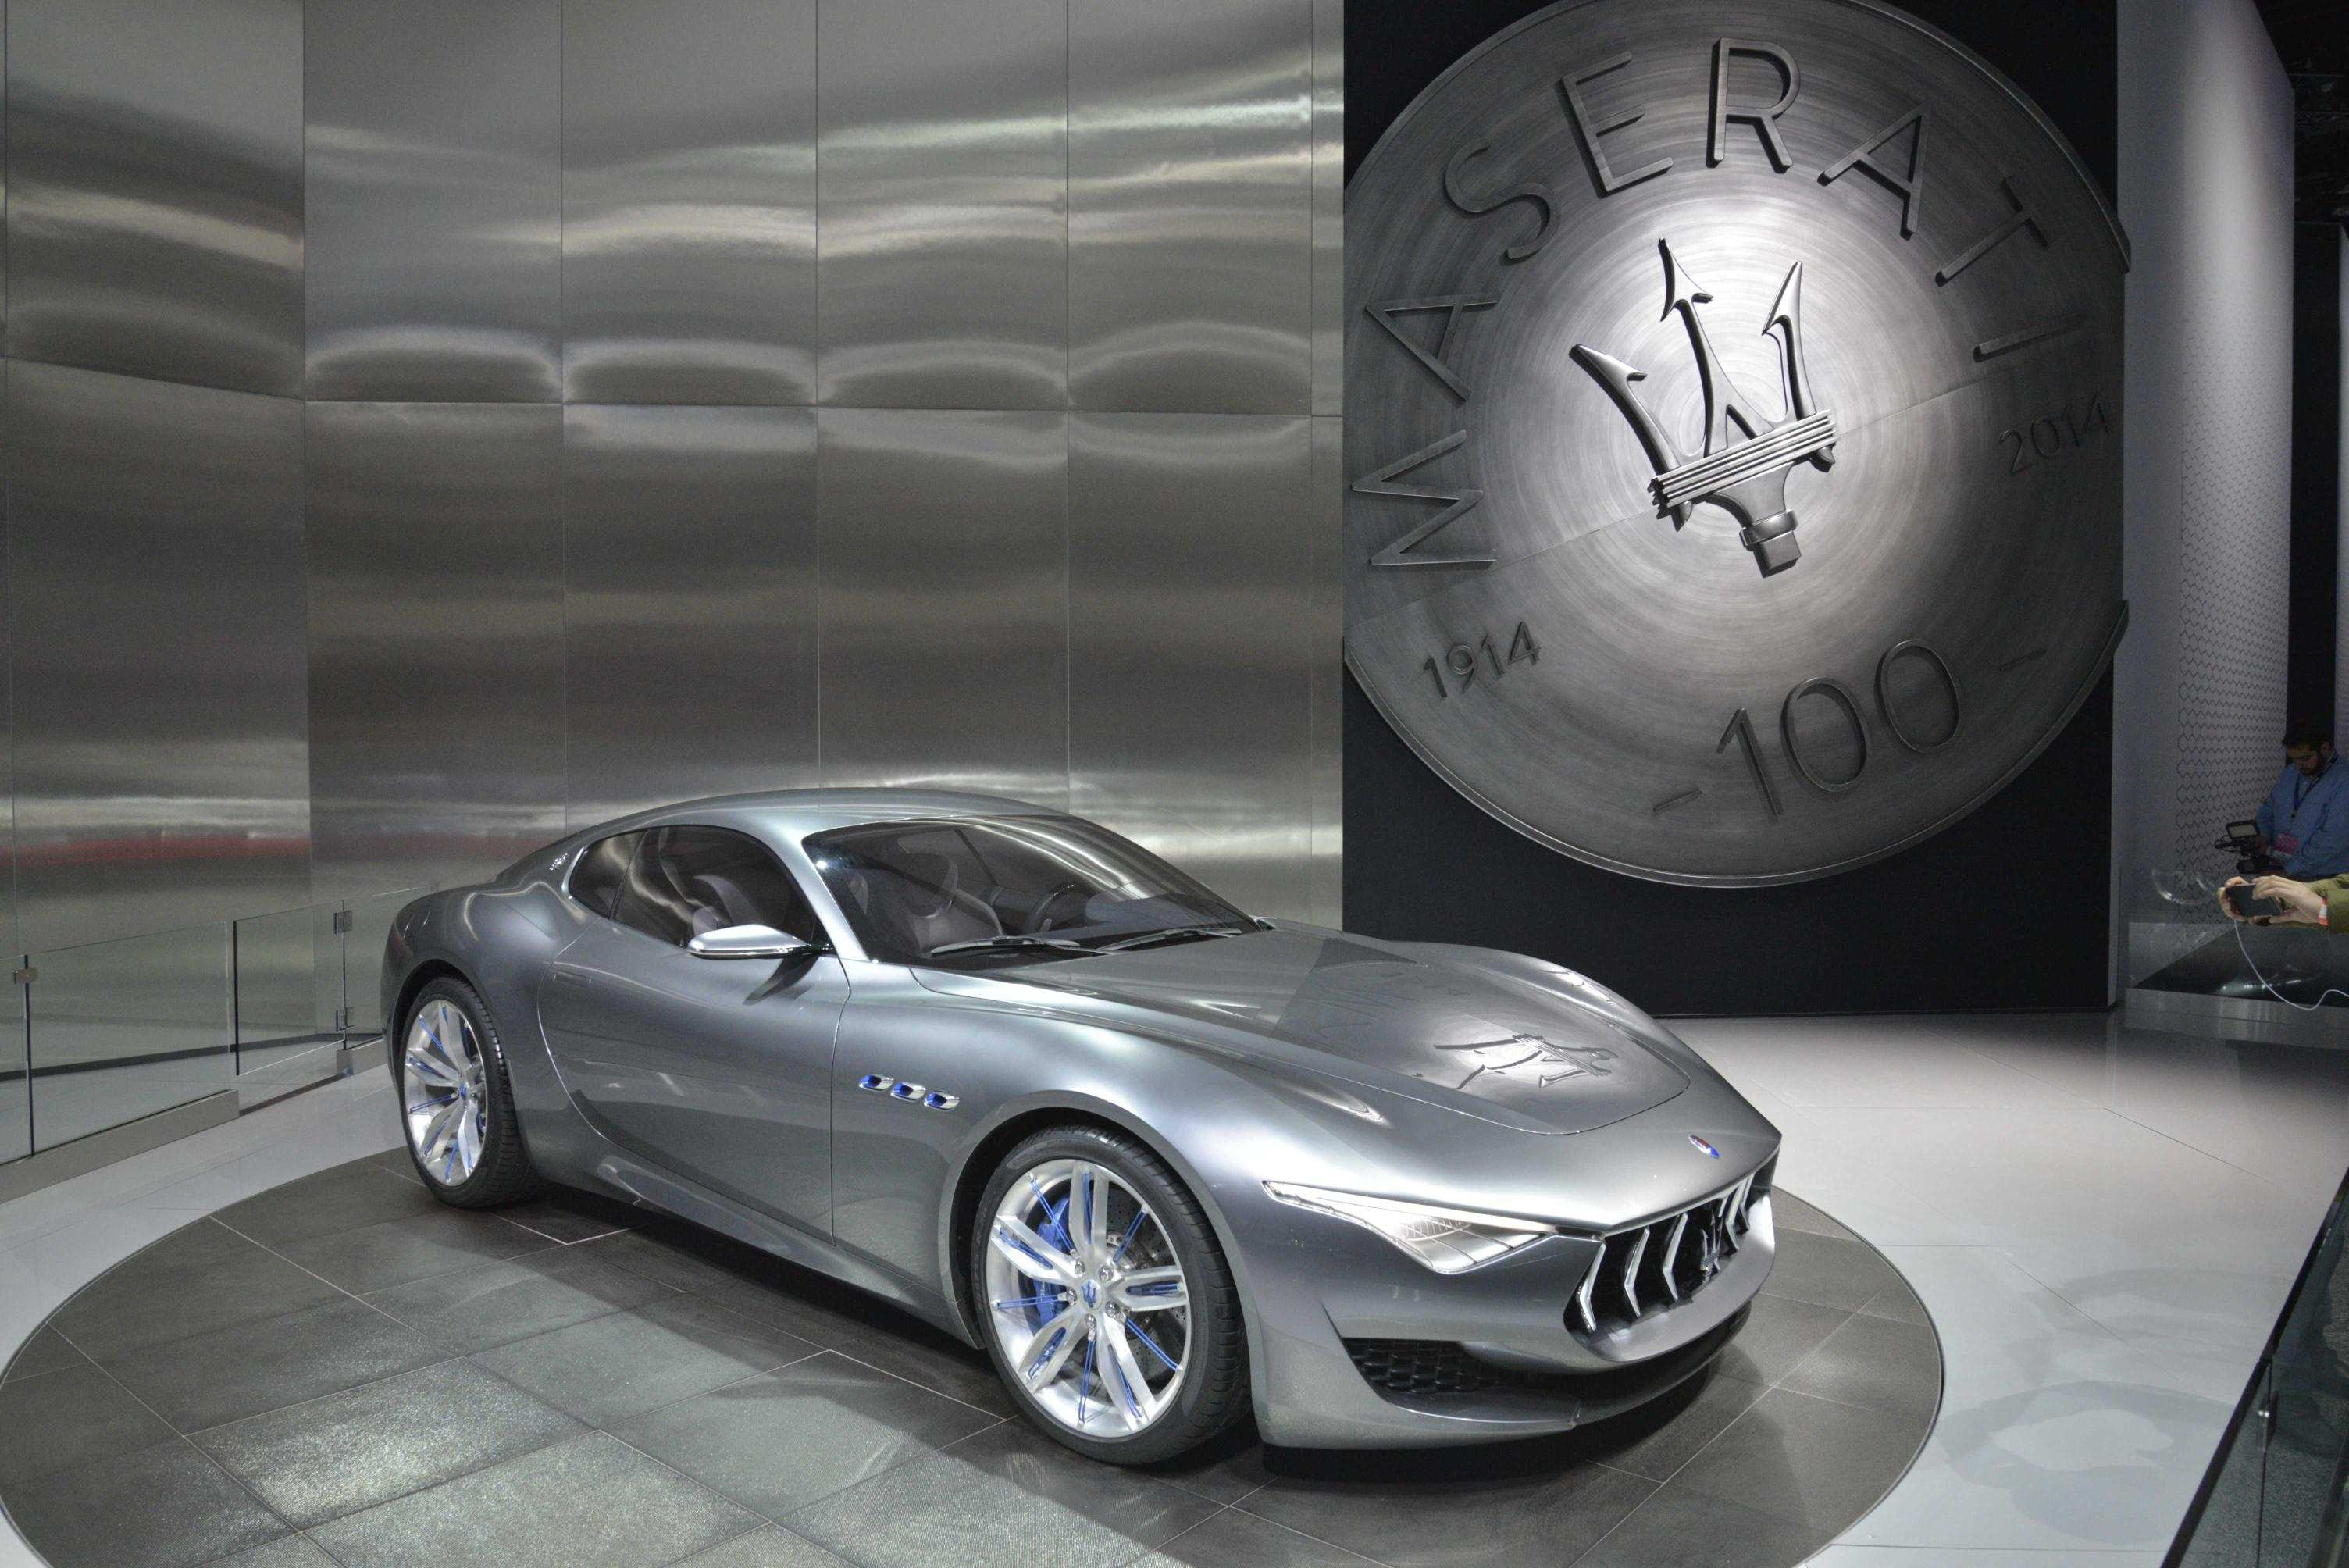 42 All New 2020 Maserati Alfieris Release Date